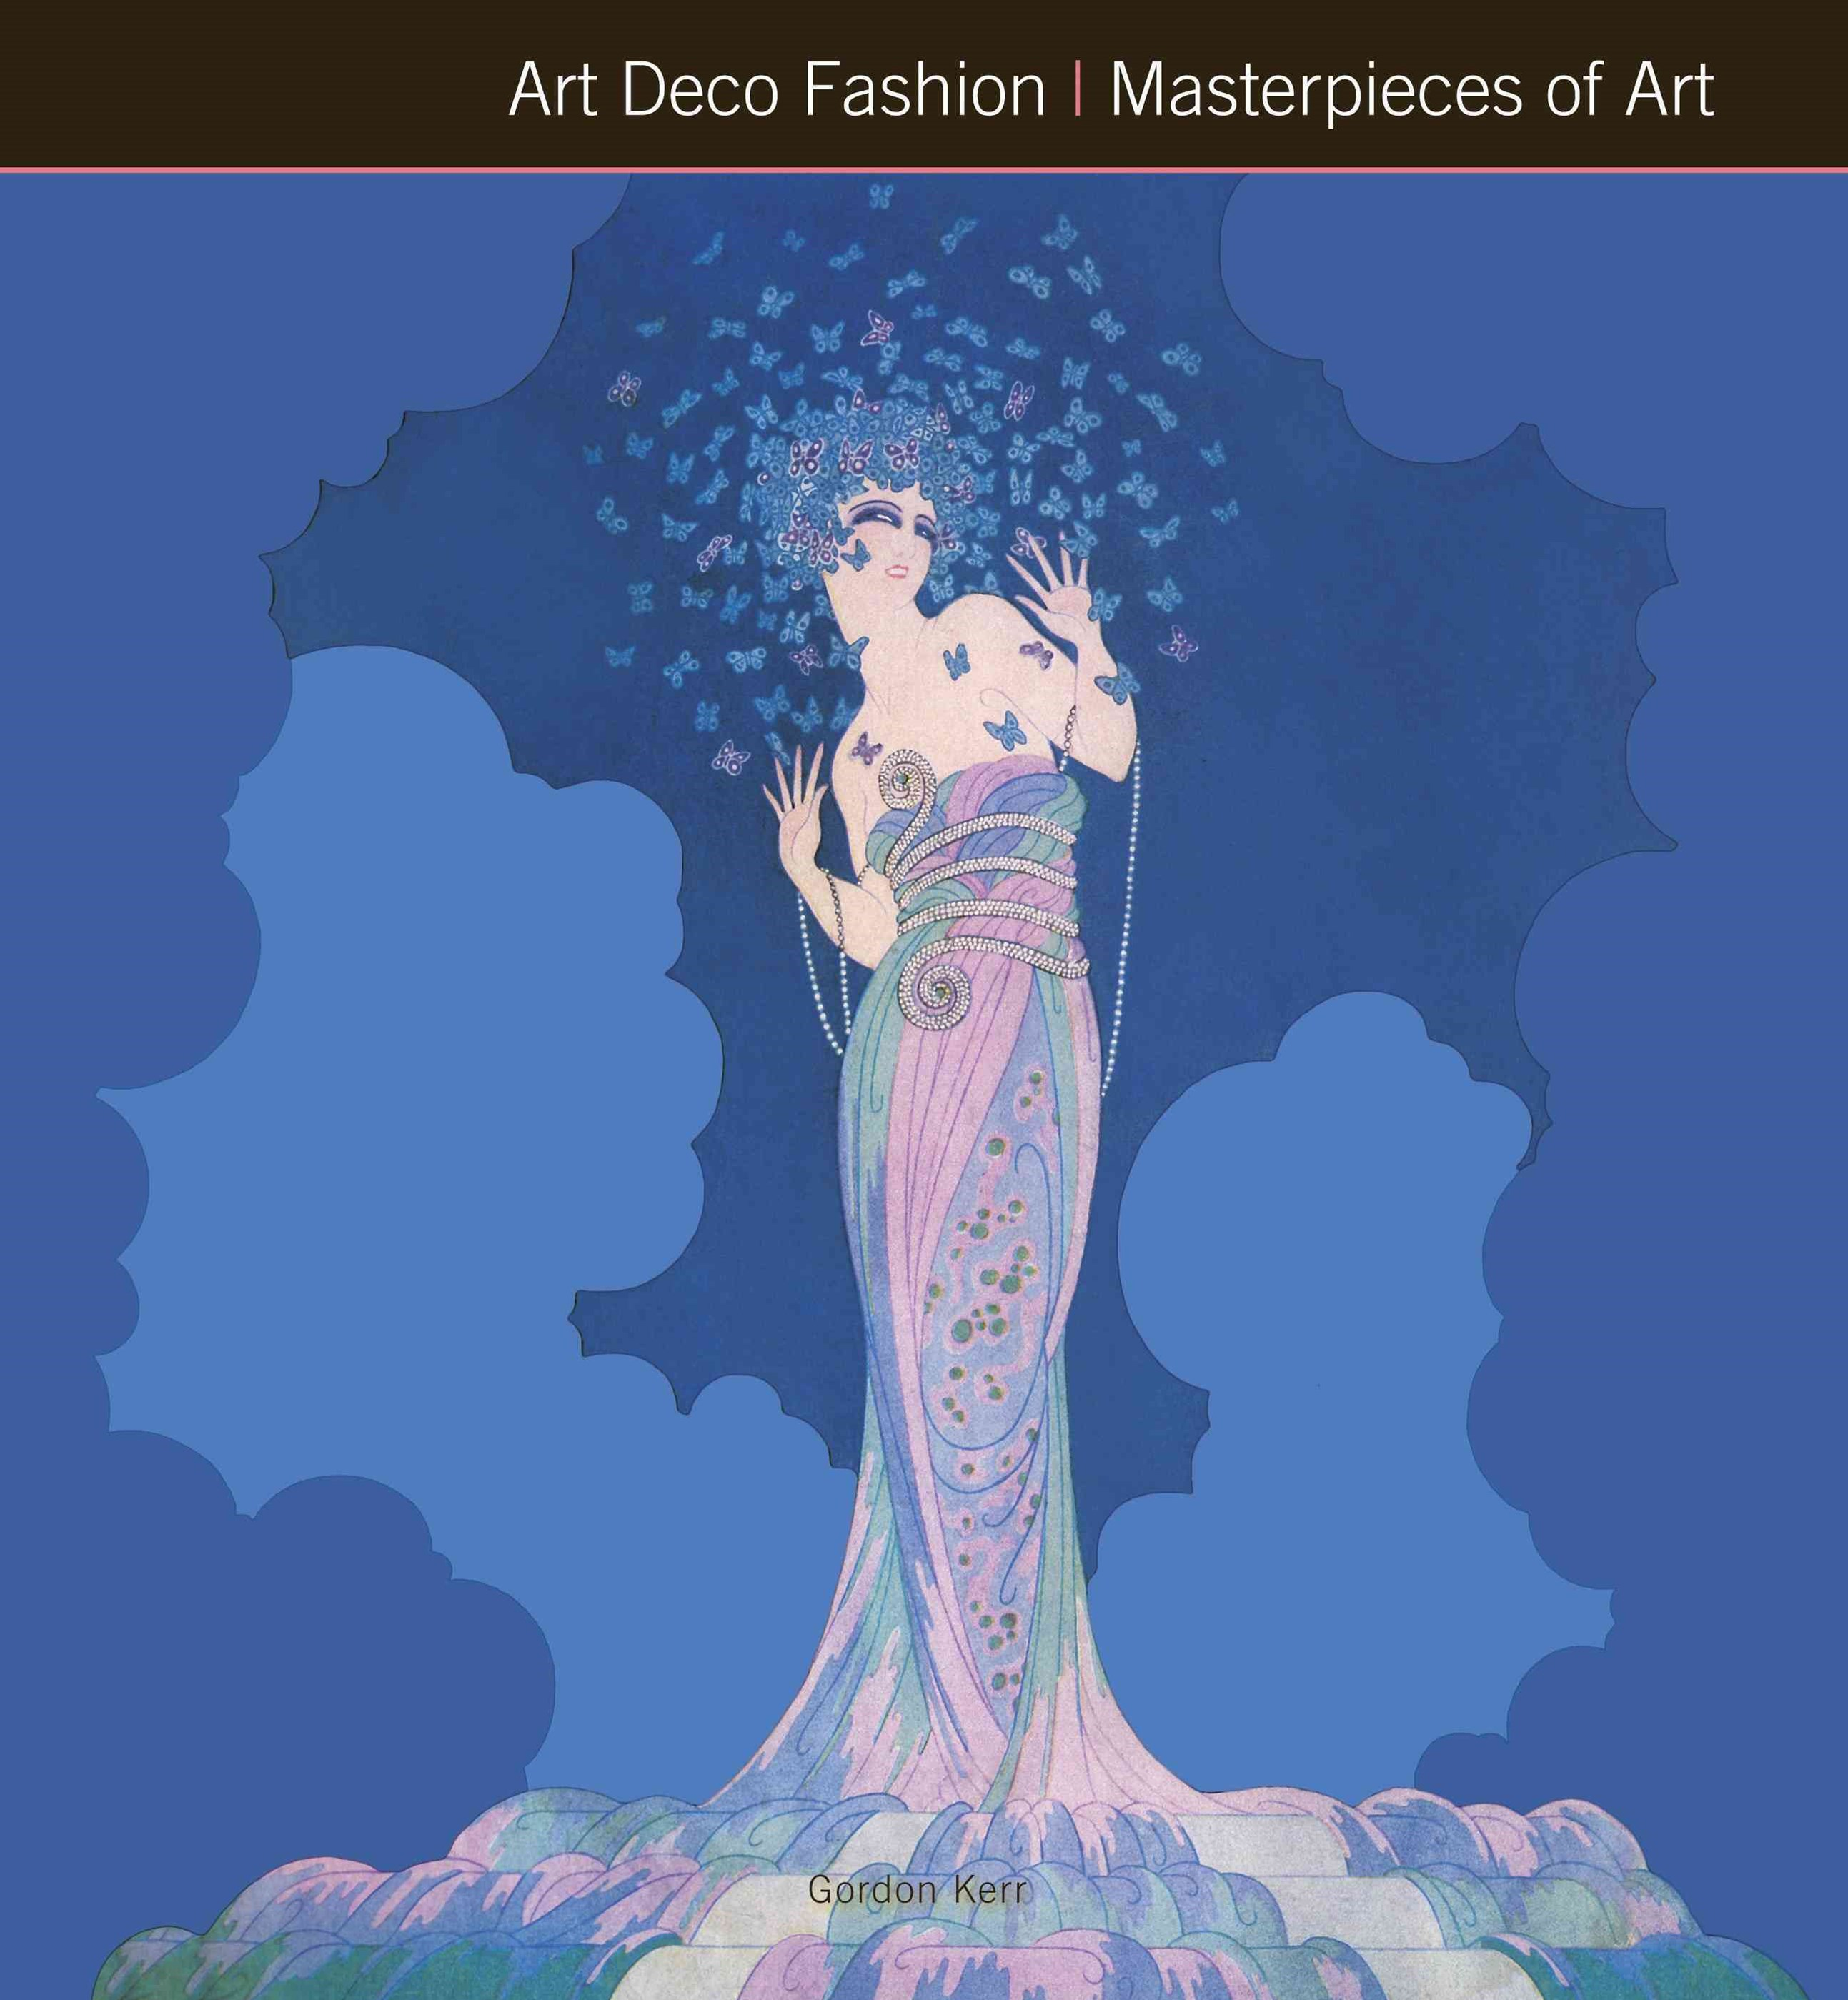 Art Deco Fashion: Masterpieces of Art